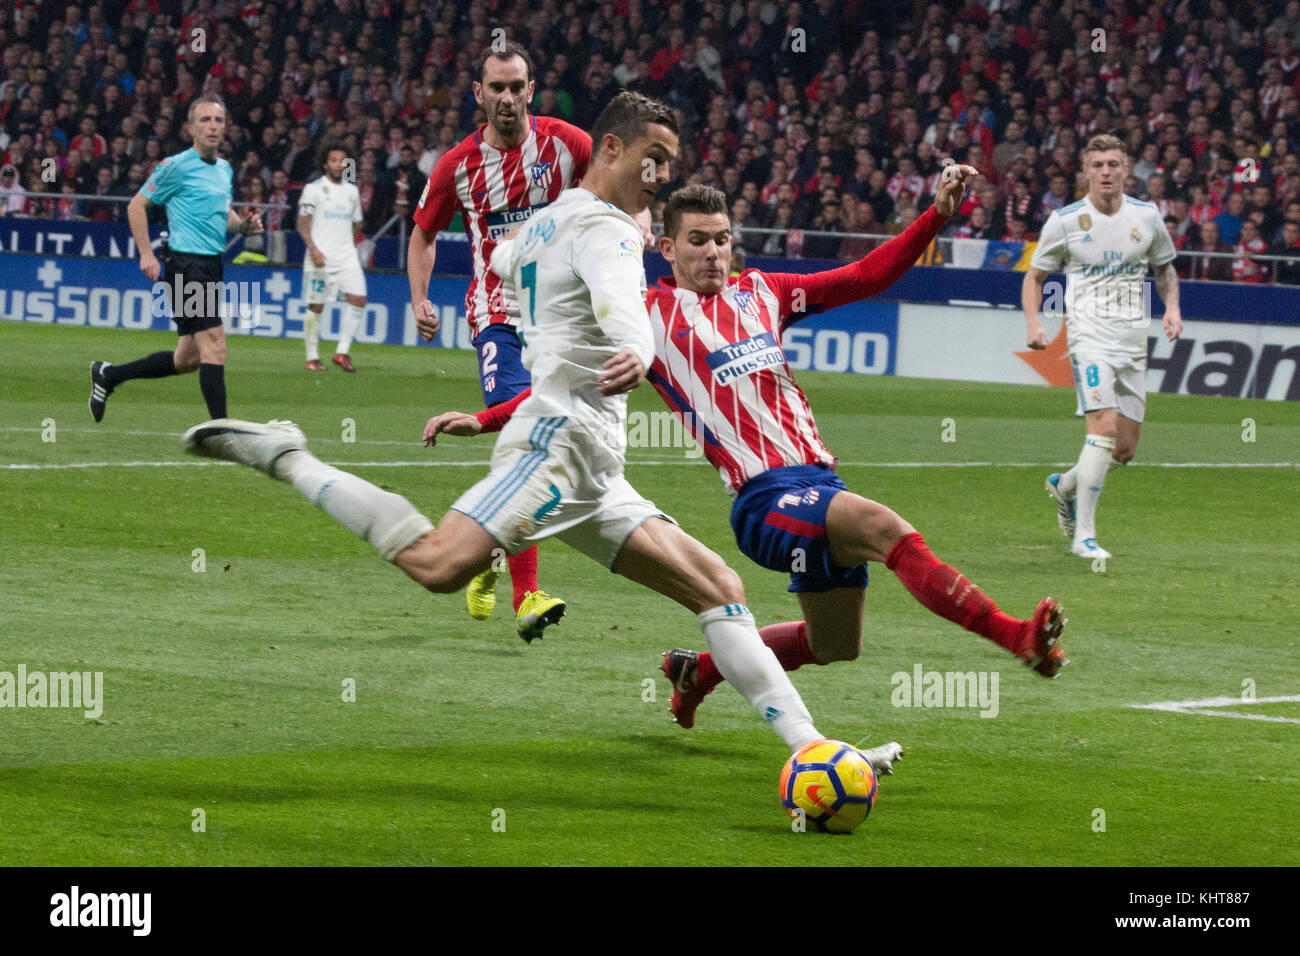 Cristiano Ronaldo L Shoot To Goal Photo By Jorge Gonzalez Pacific Stock Photo Alamy